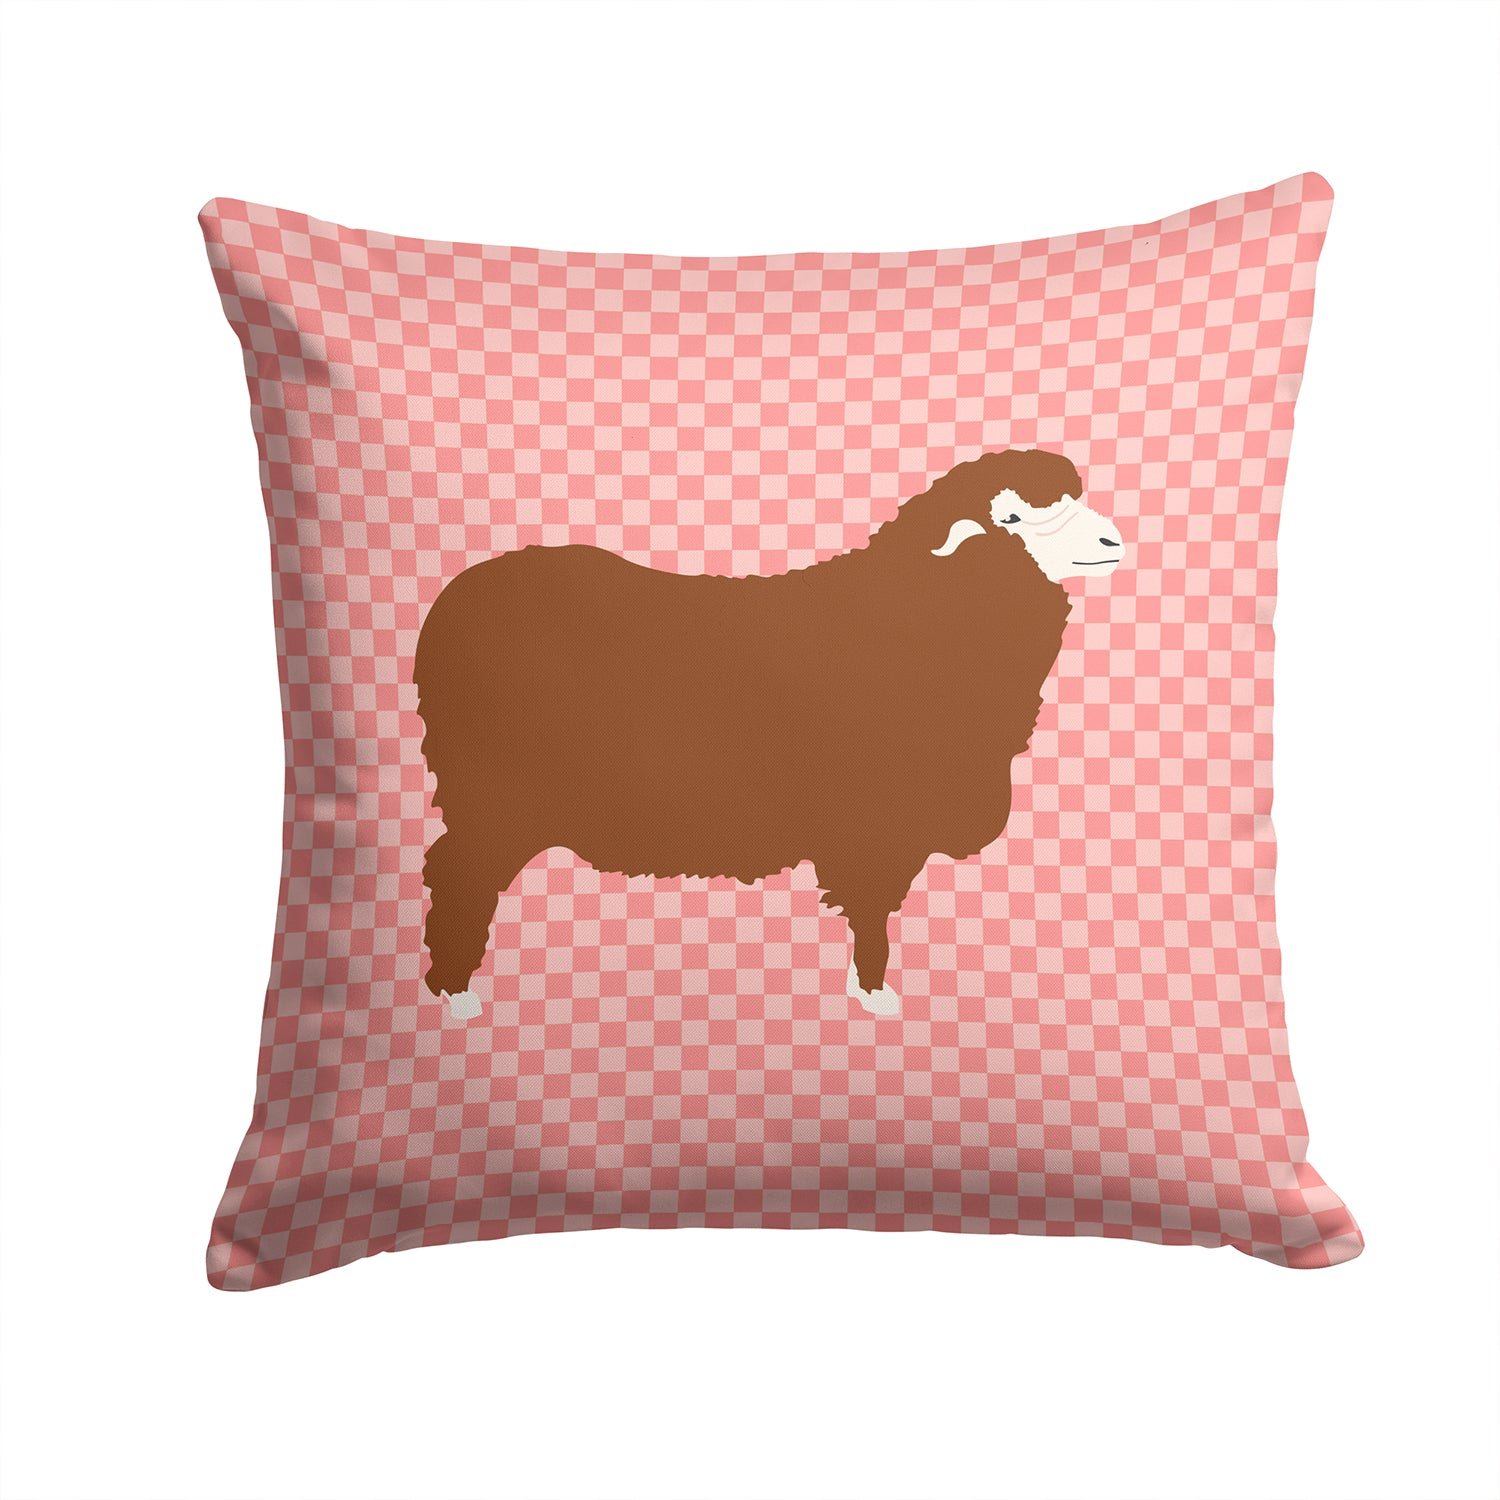 Merino Sheep Pink Check Fabric Decorative Pillow BB7981PW1414 by Caroline's Treasures